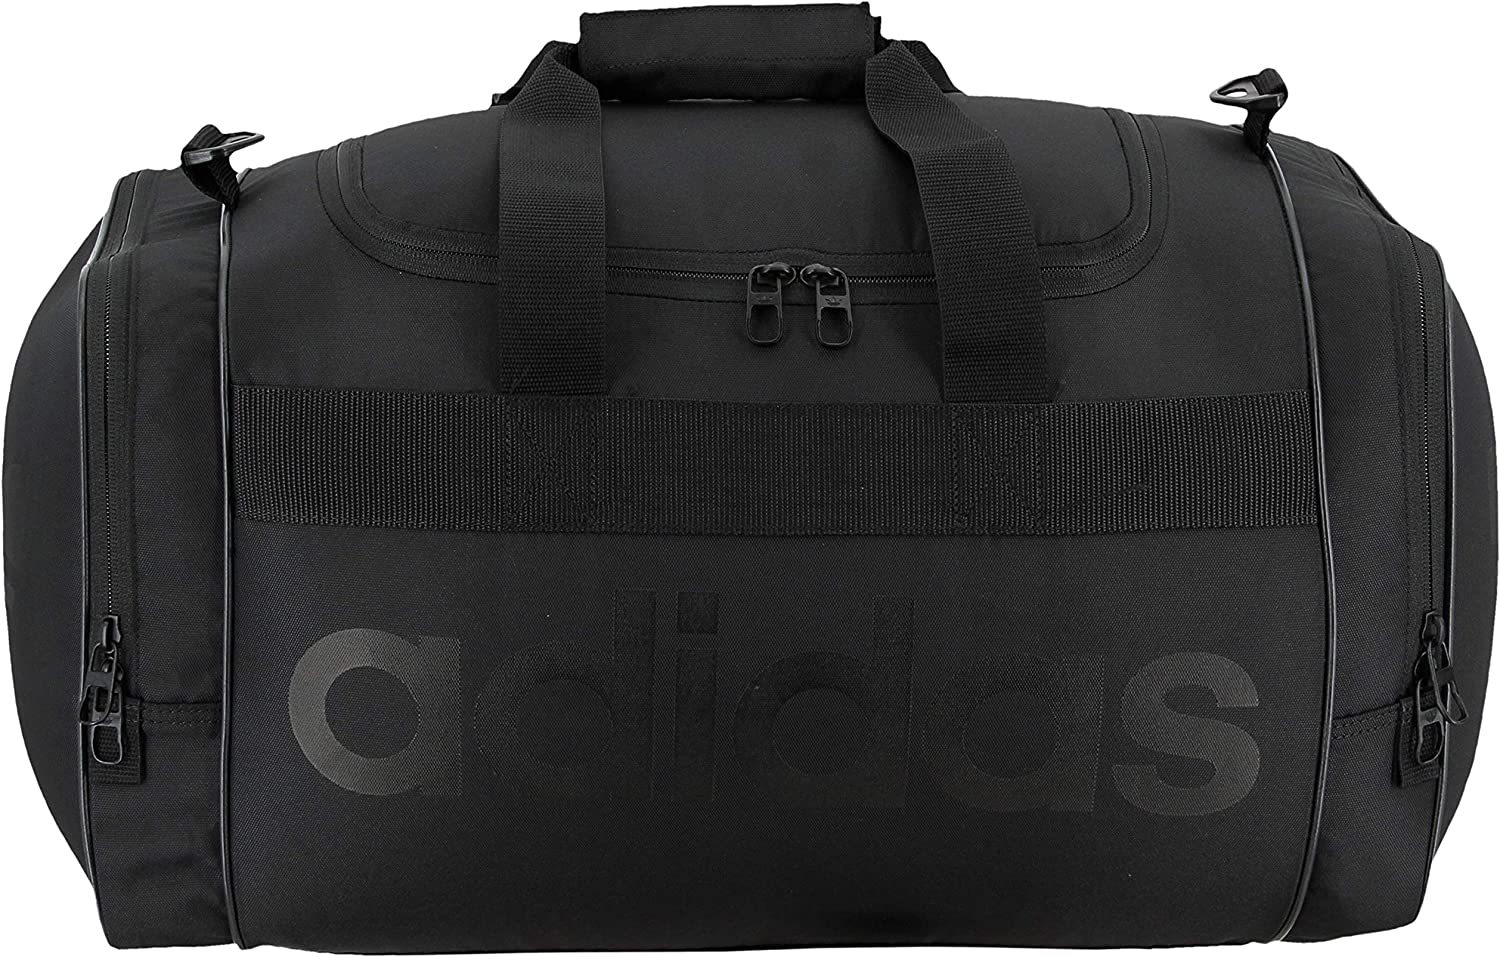 adidas Originals Unisex Santiago Duffel Bag, Black Black, ONE SIZE